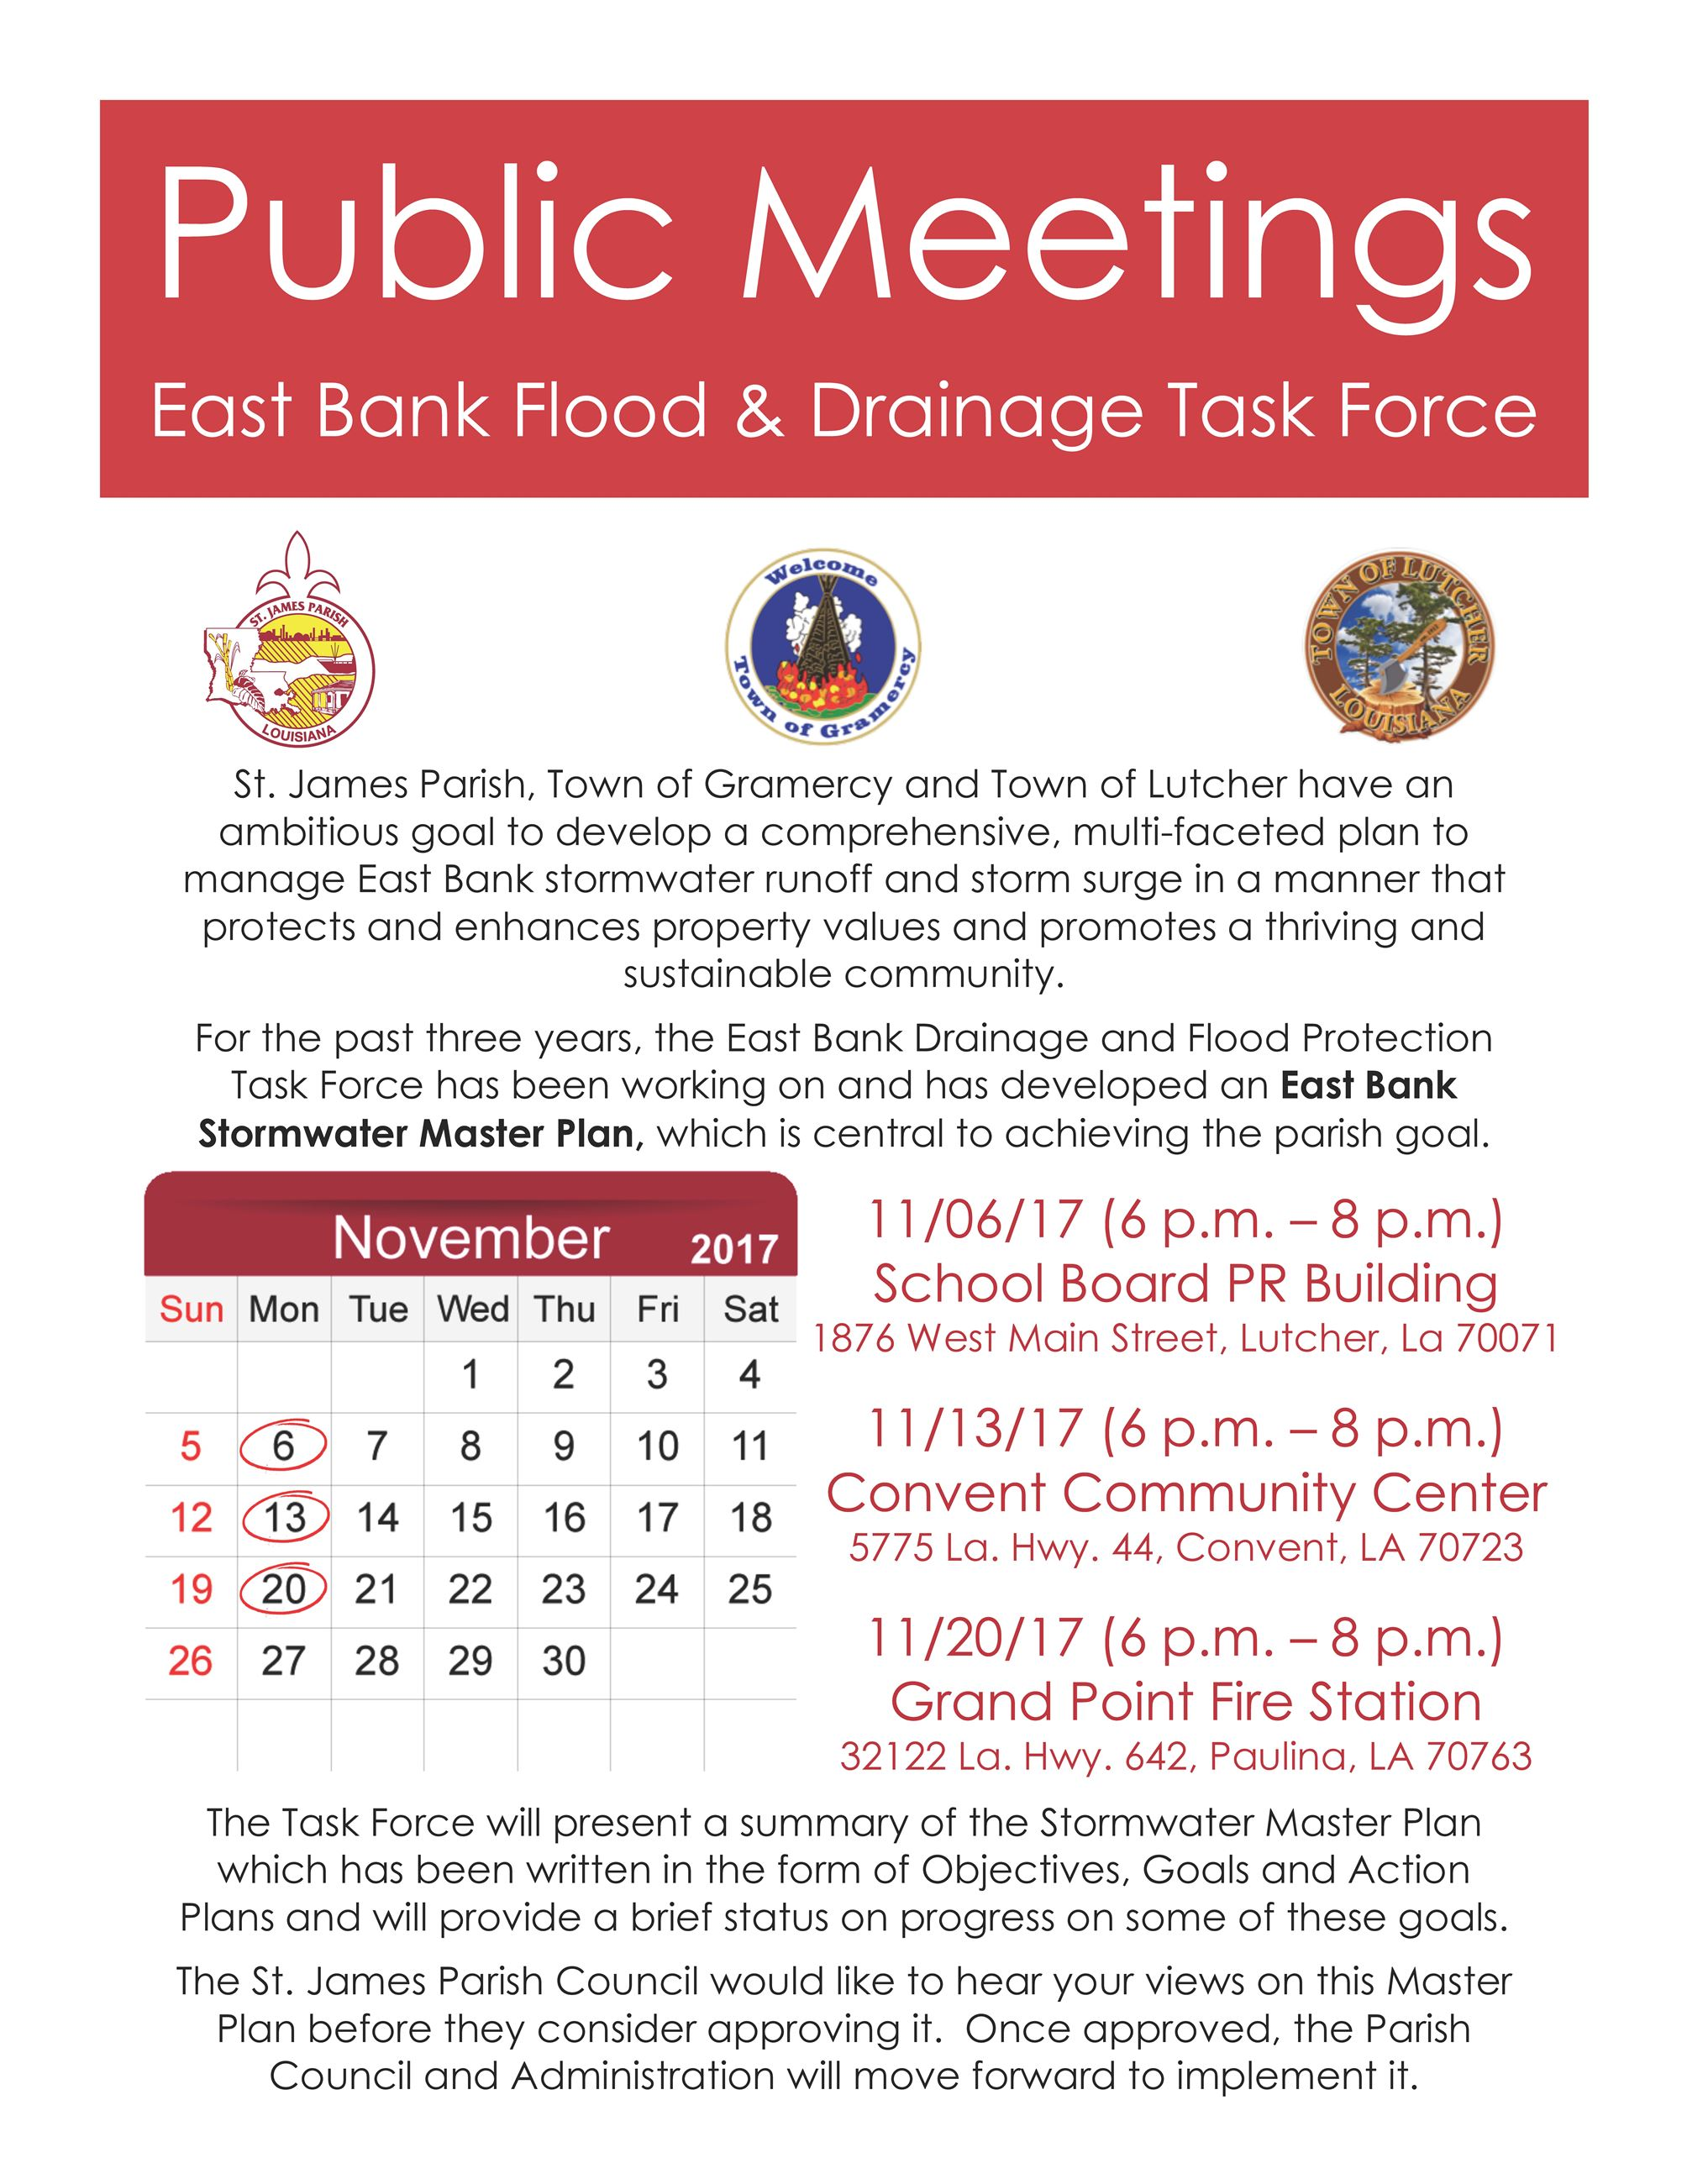 Public Meeting Flyer - November 2017